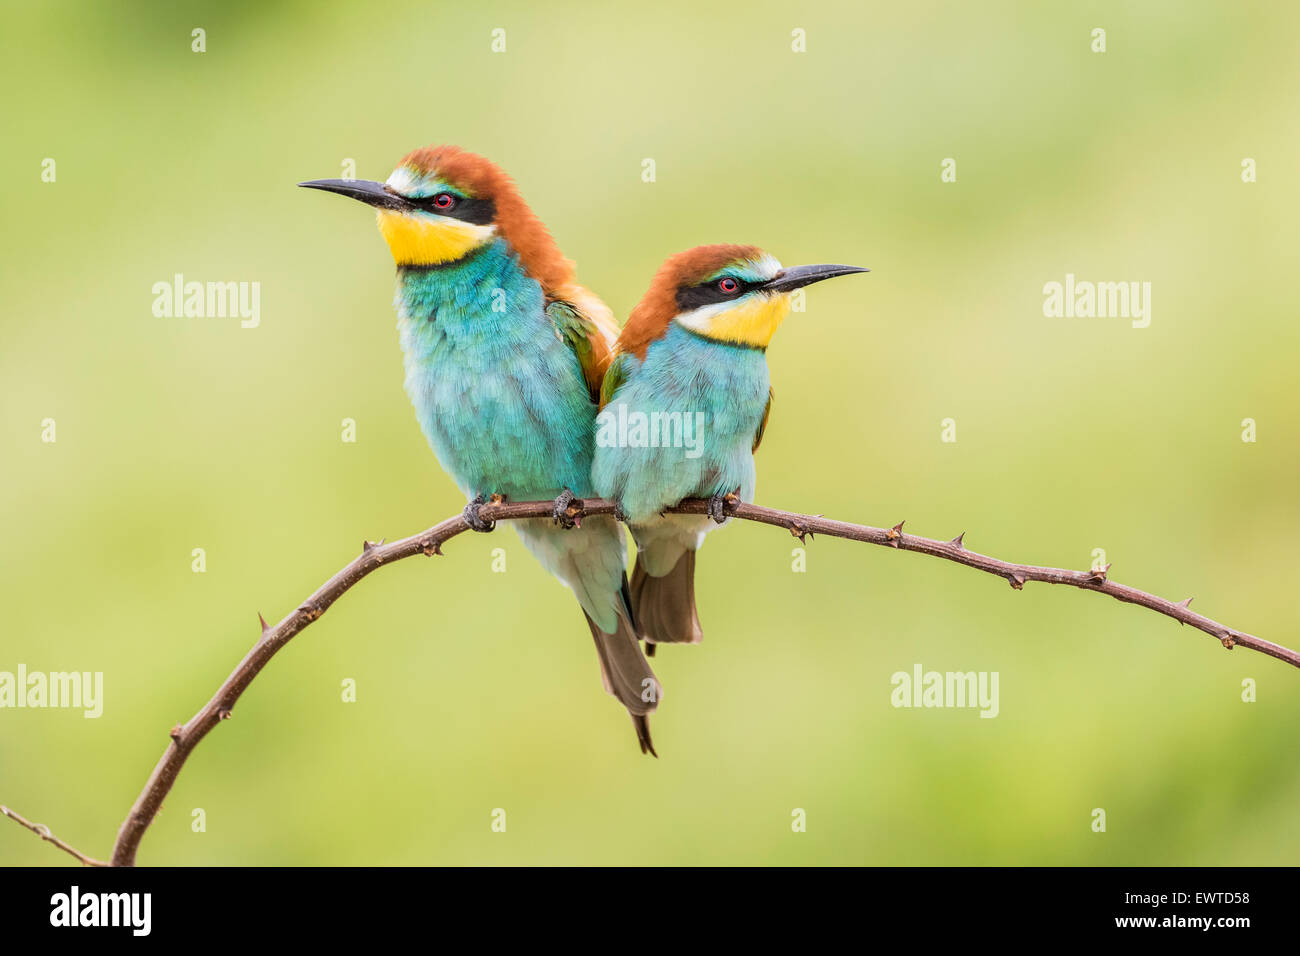 European bee-eater (Merops apiaster), two birds sitting on branch, Ruse Province, Bulgaria - Stock Image